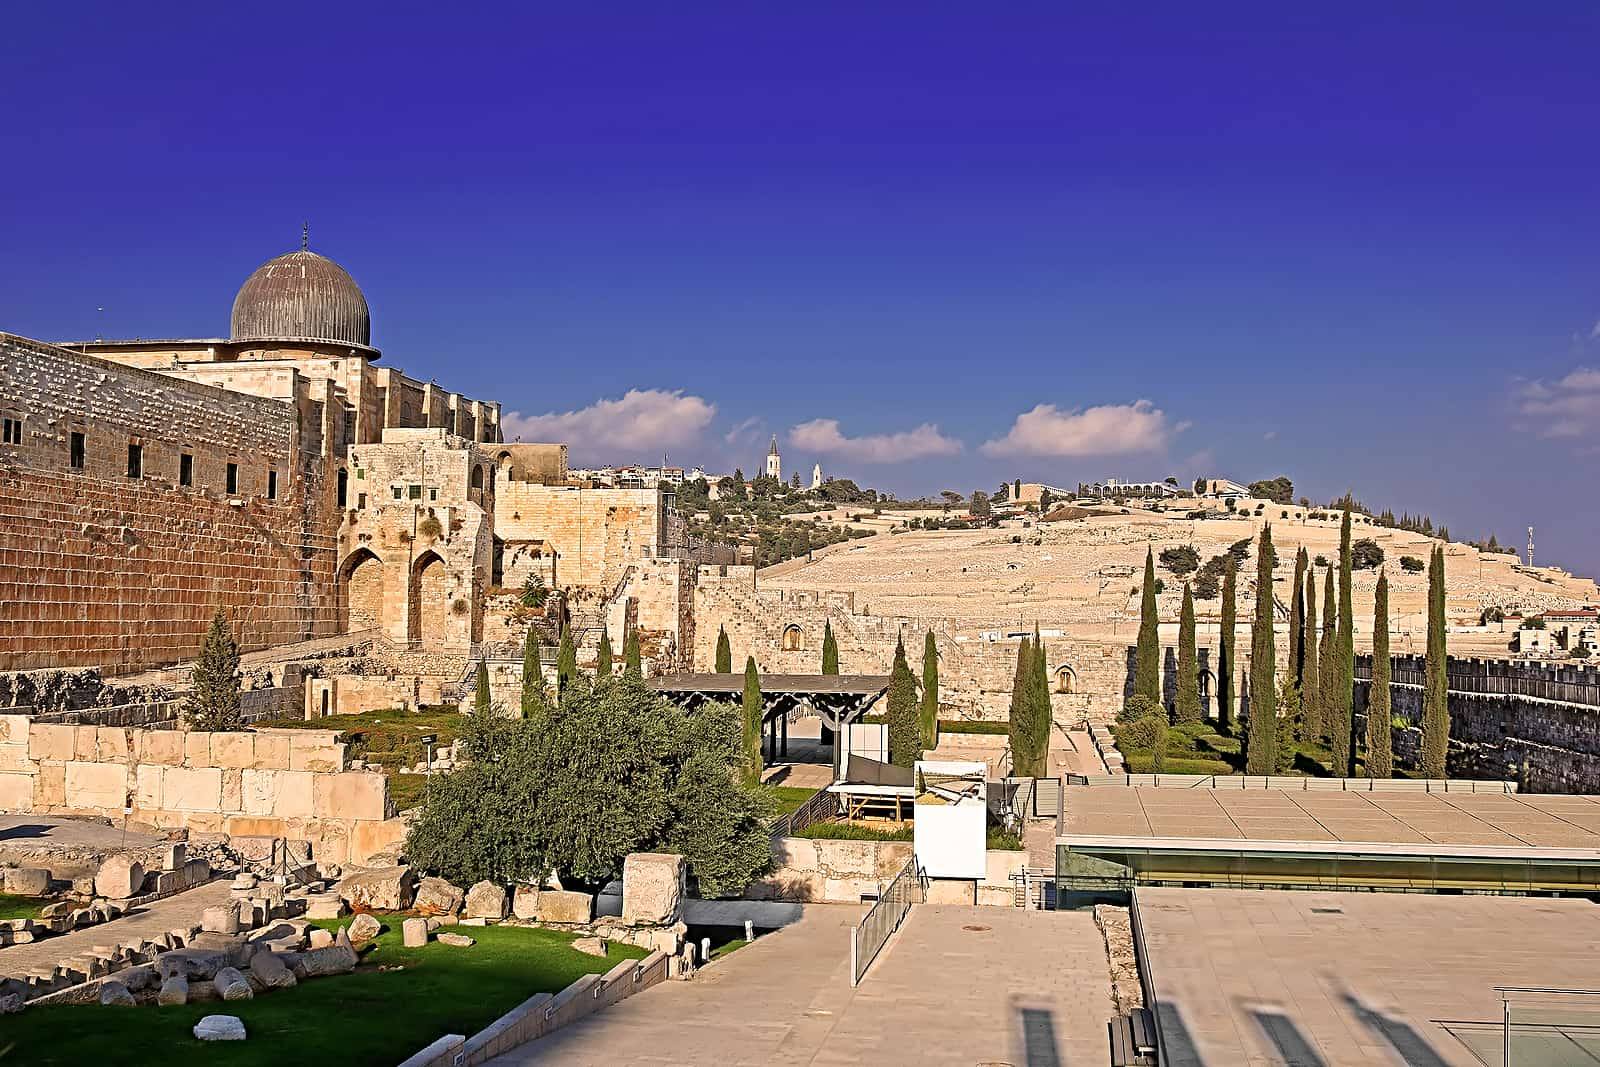 The Archaeological Park - Davidson Center in the old city of Jerusalem